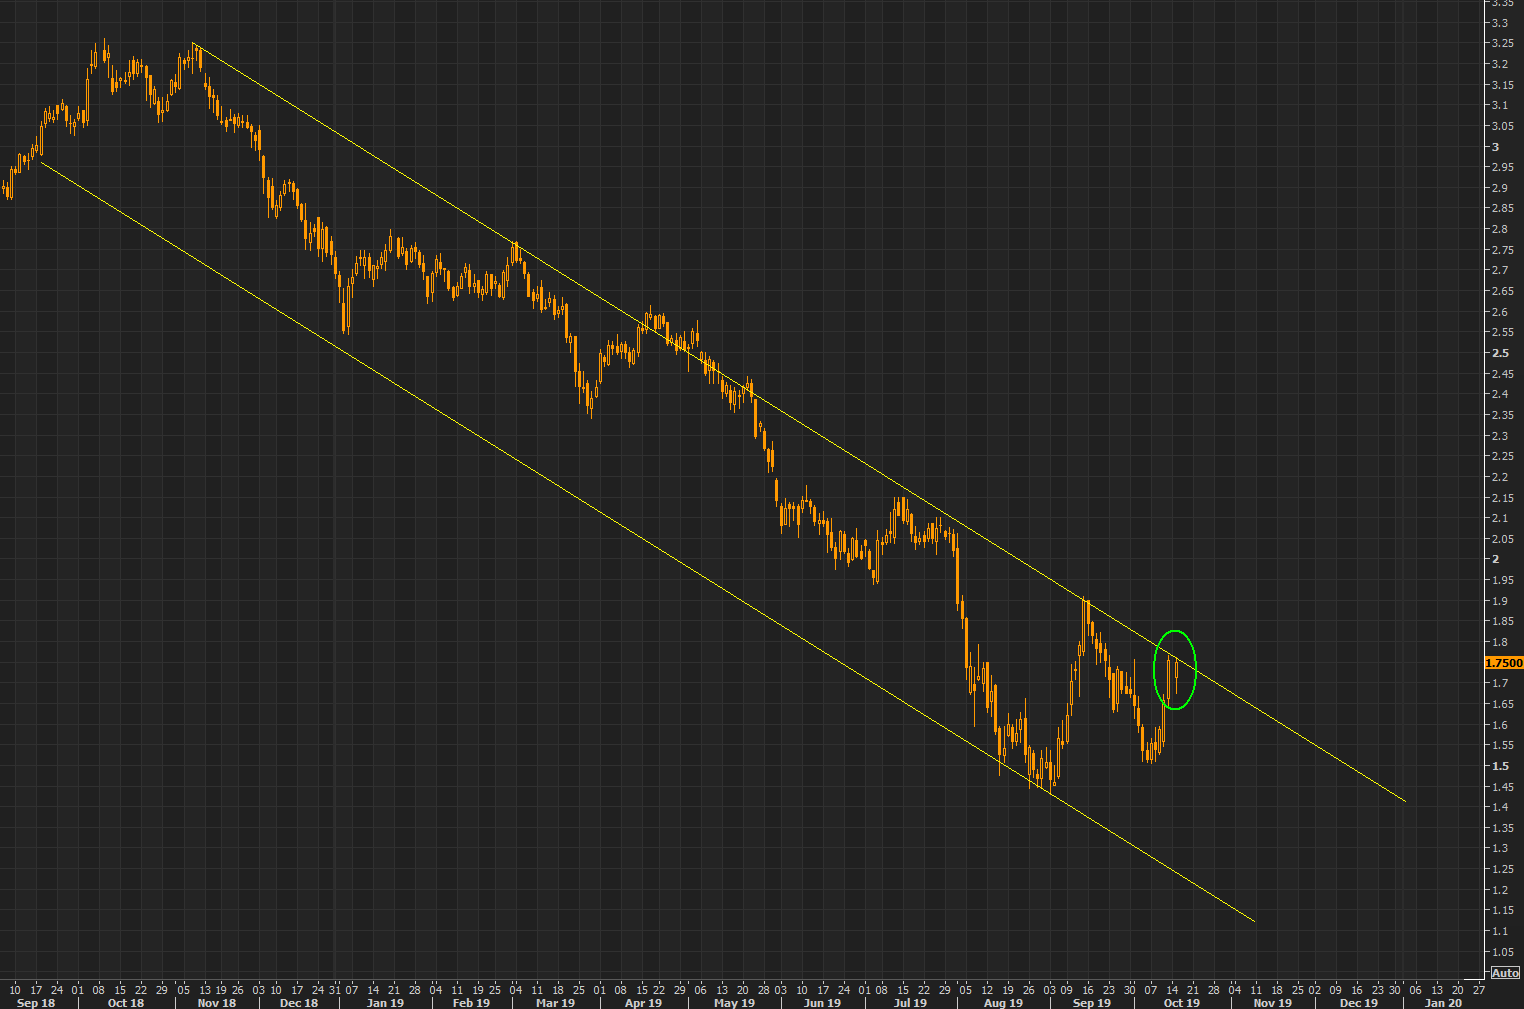 Watching yields (2) - US 10 year breakout in the making?